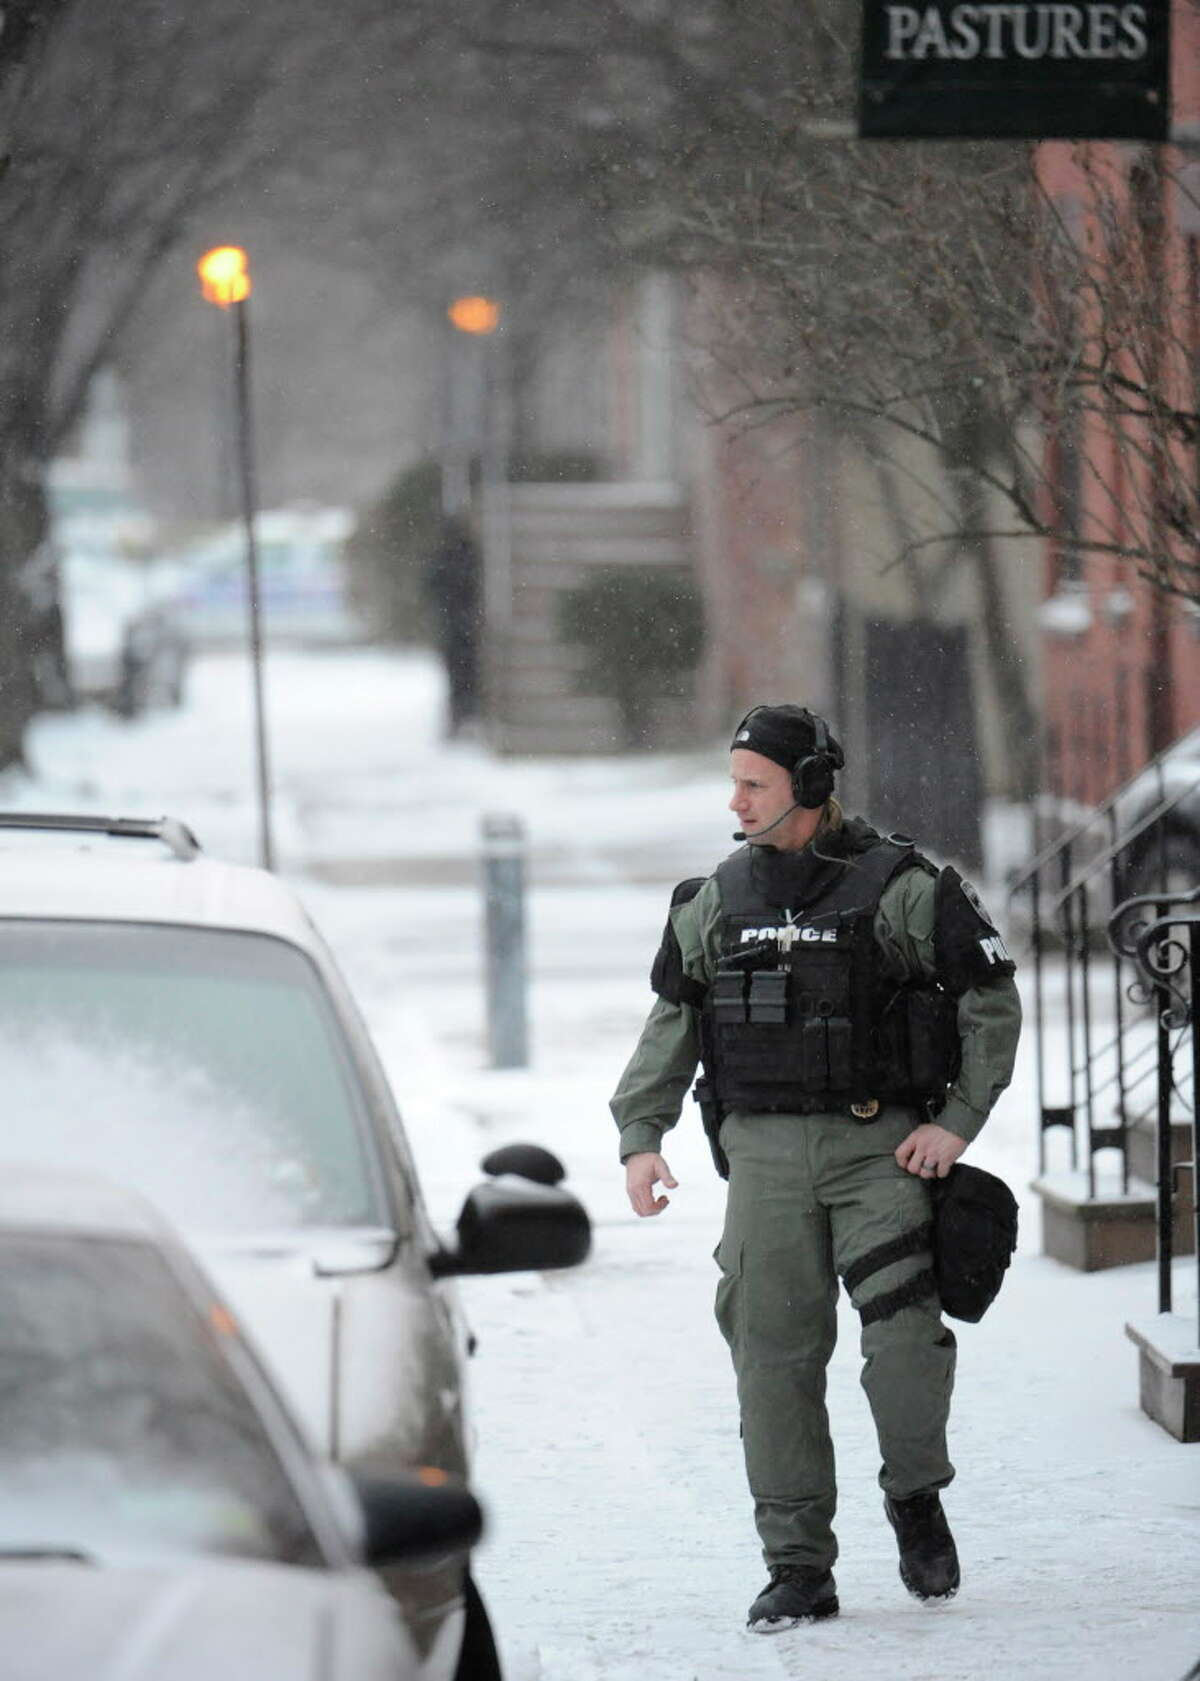 Albany Police SWAT team member Ken koontz works the radio at the scene of a hostage situation on Westerlo St in Albany December 23, 2010. (Skip Dickstein / Times Union)